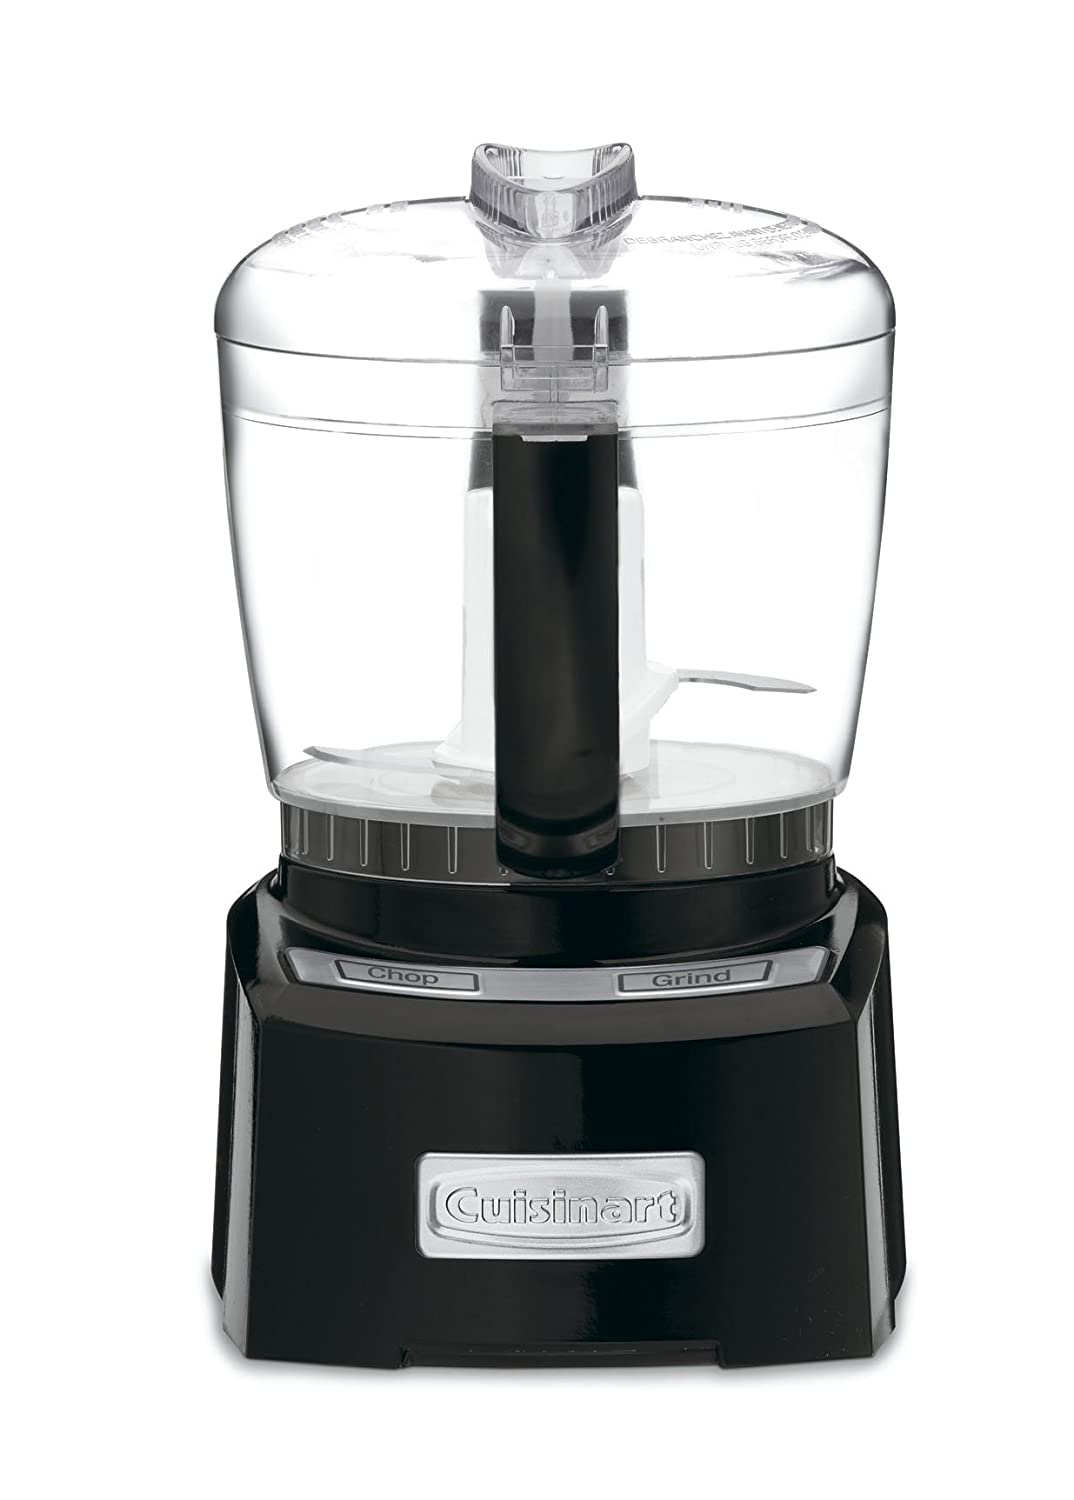 Cuisinart CH-4BK Elite Collection 4-Cup Chopper/Grinder, Black